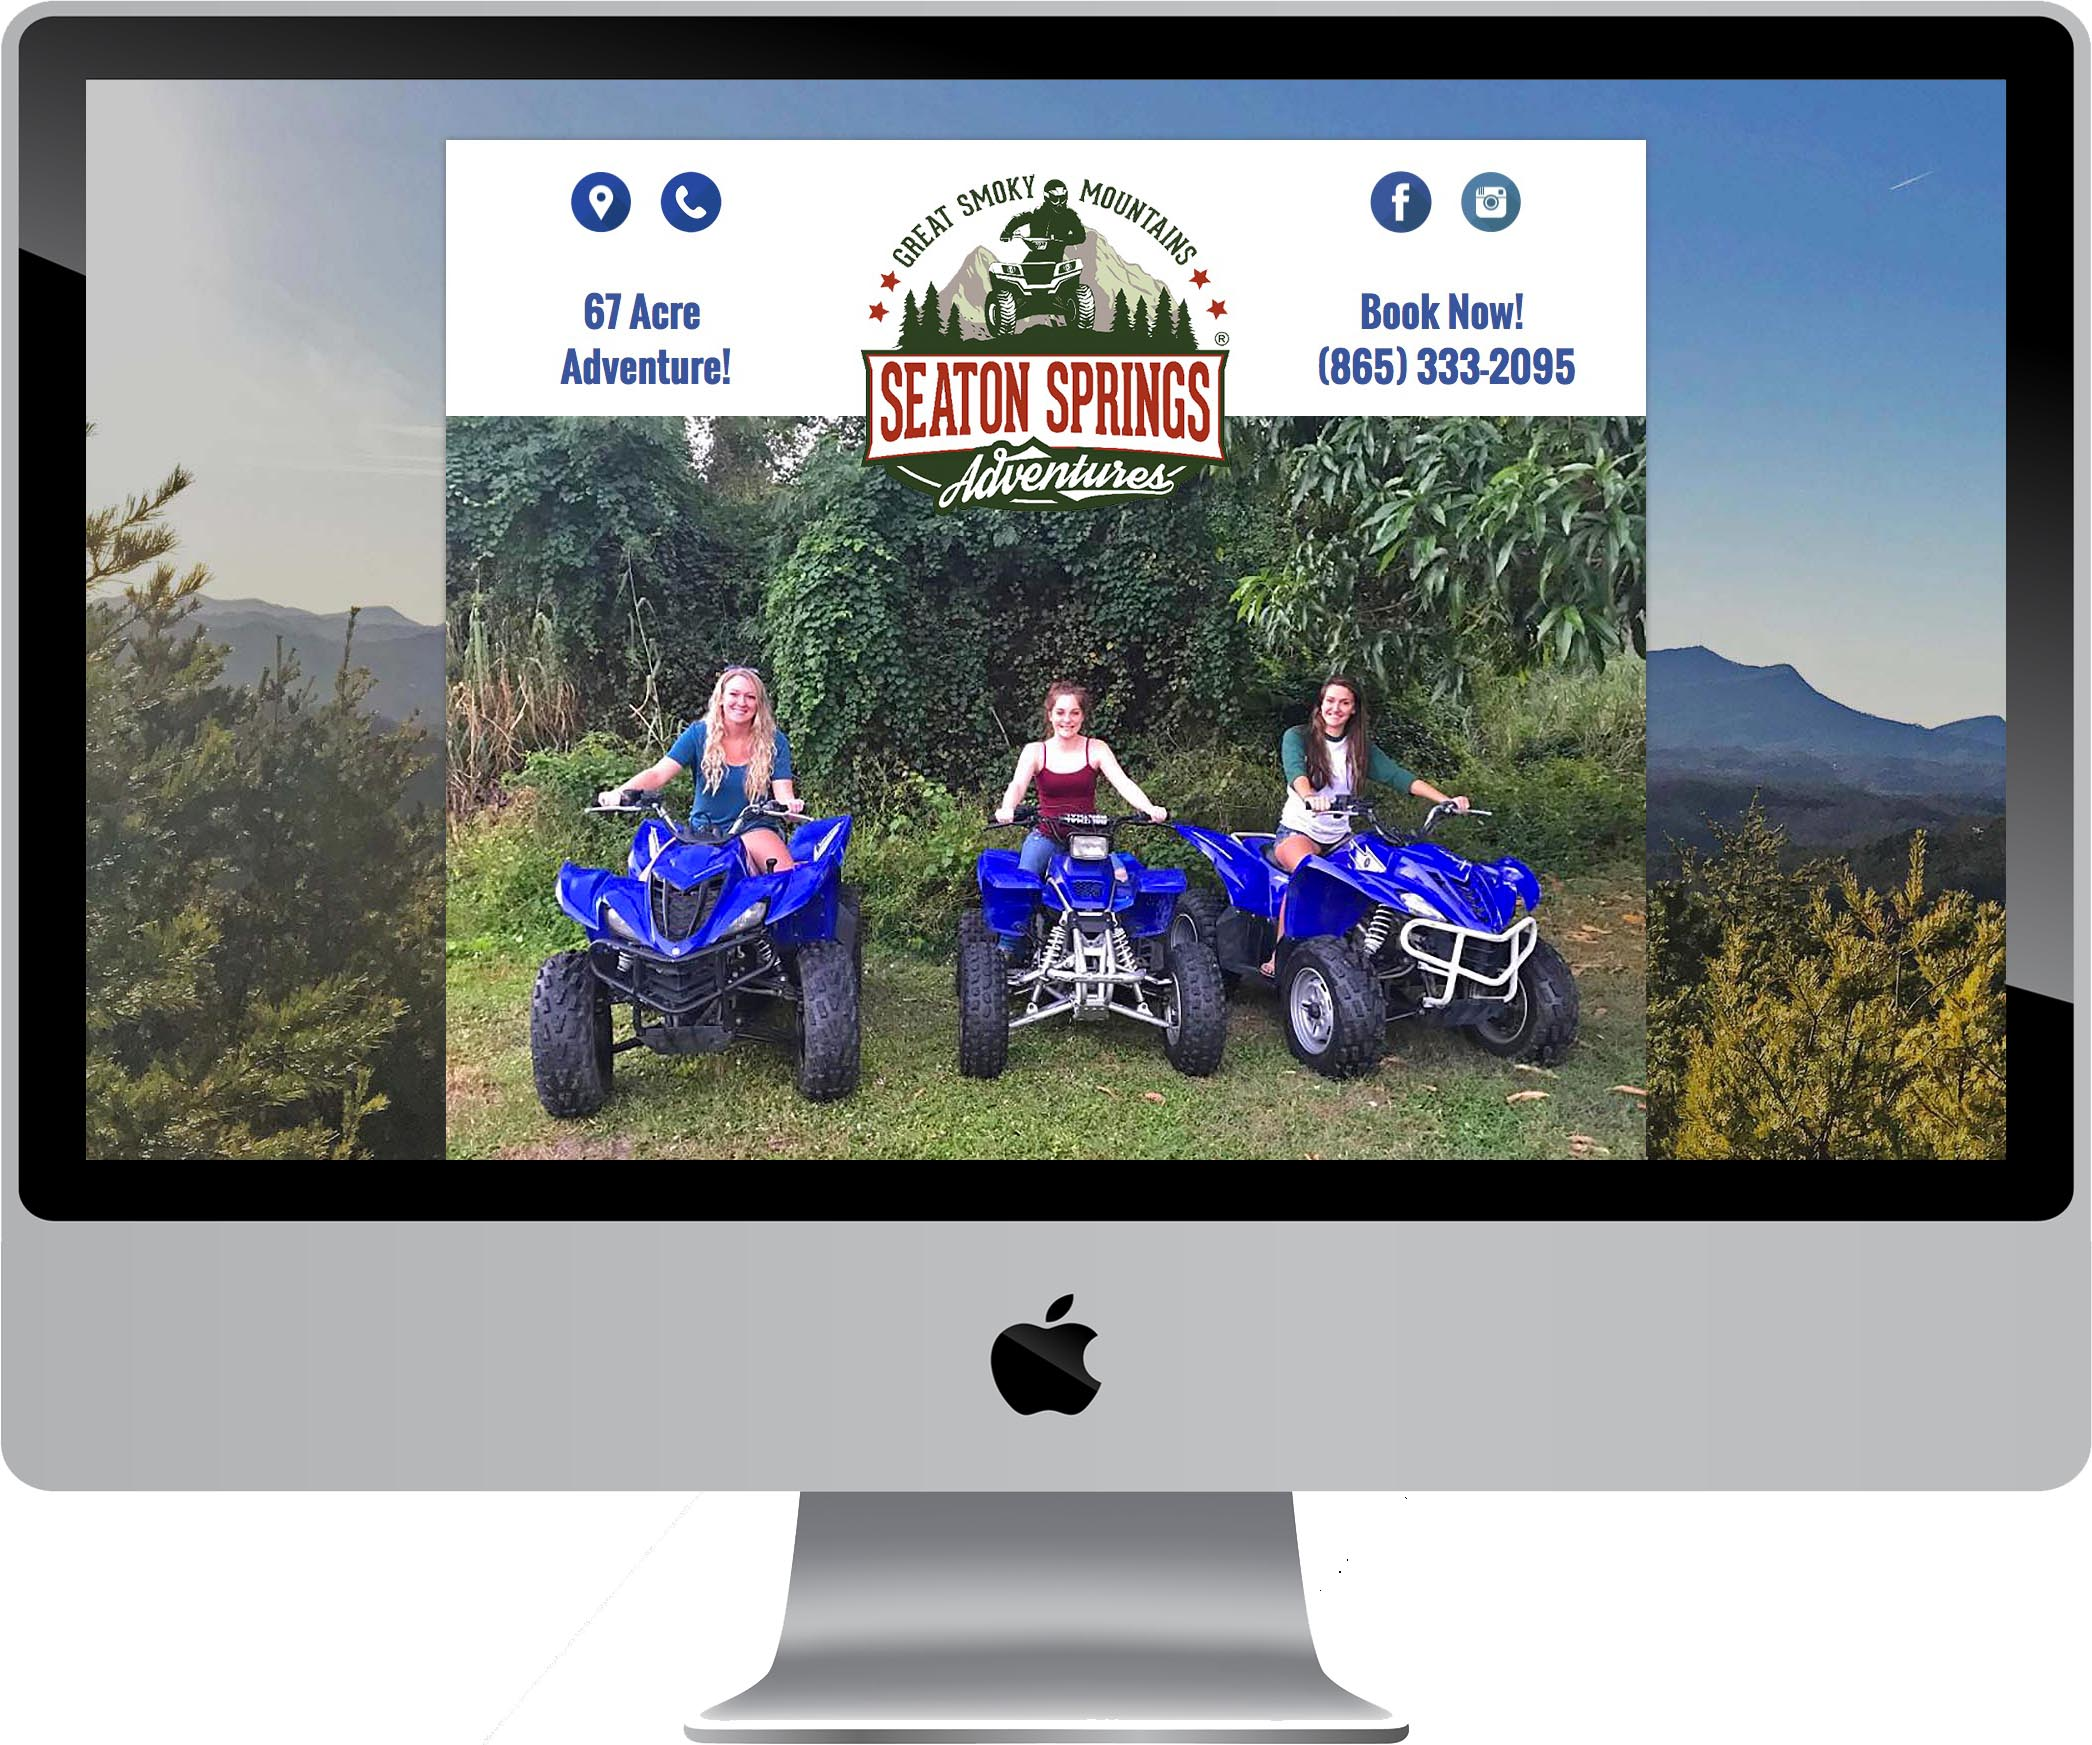 Seaton Springs Adventures Website Design